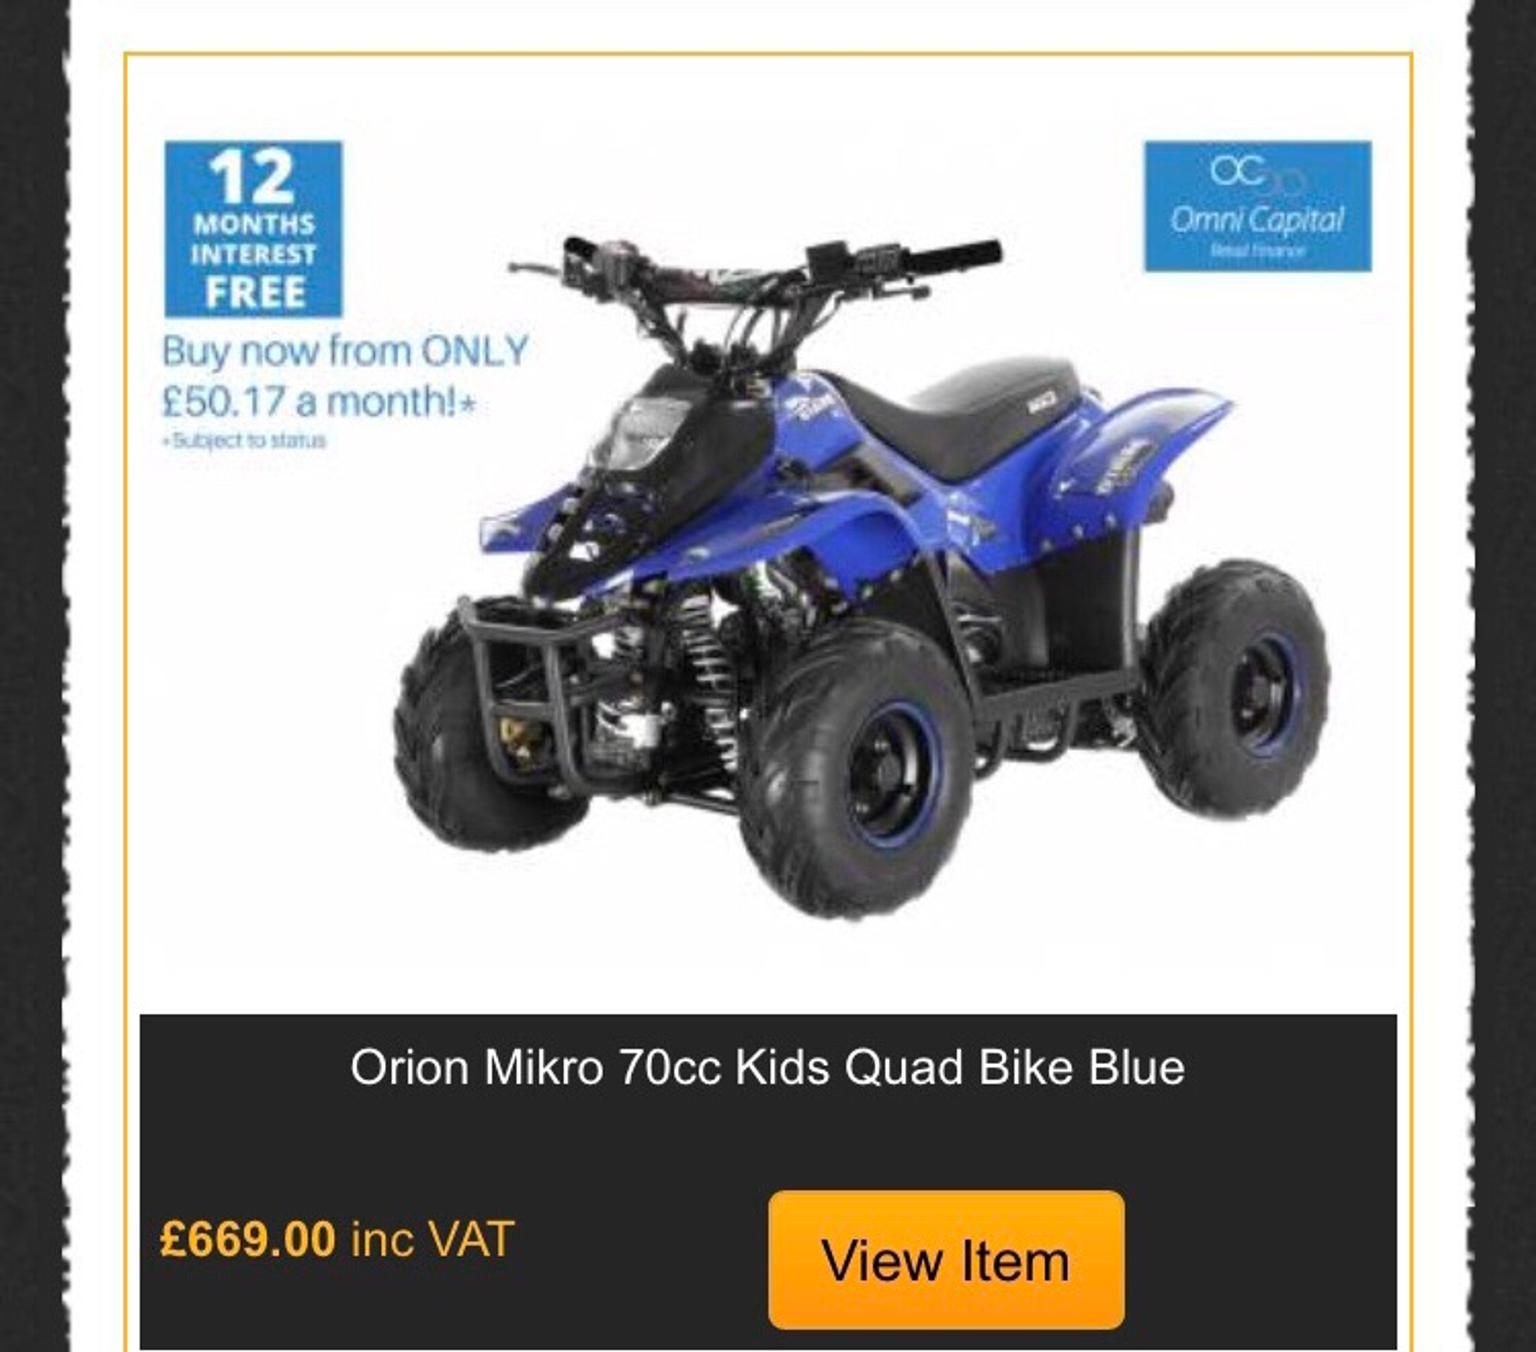 Orion Mikro 70cc Kids Quad Bike Blue In Harlow For 350.00